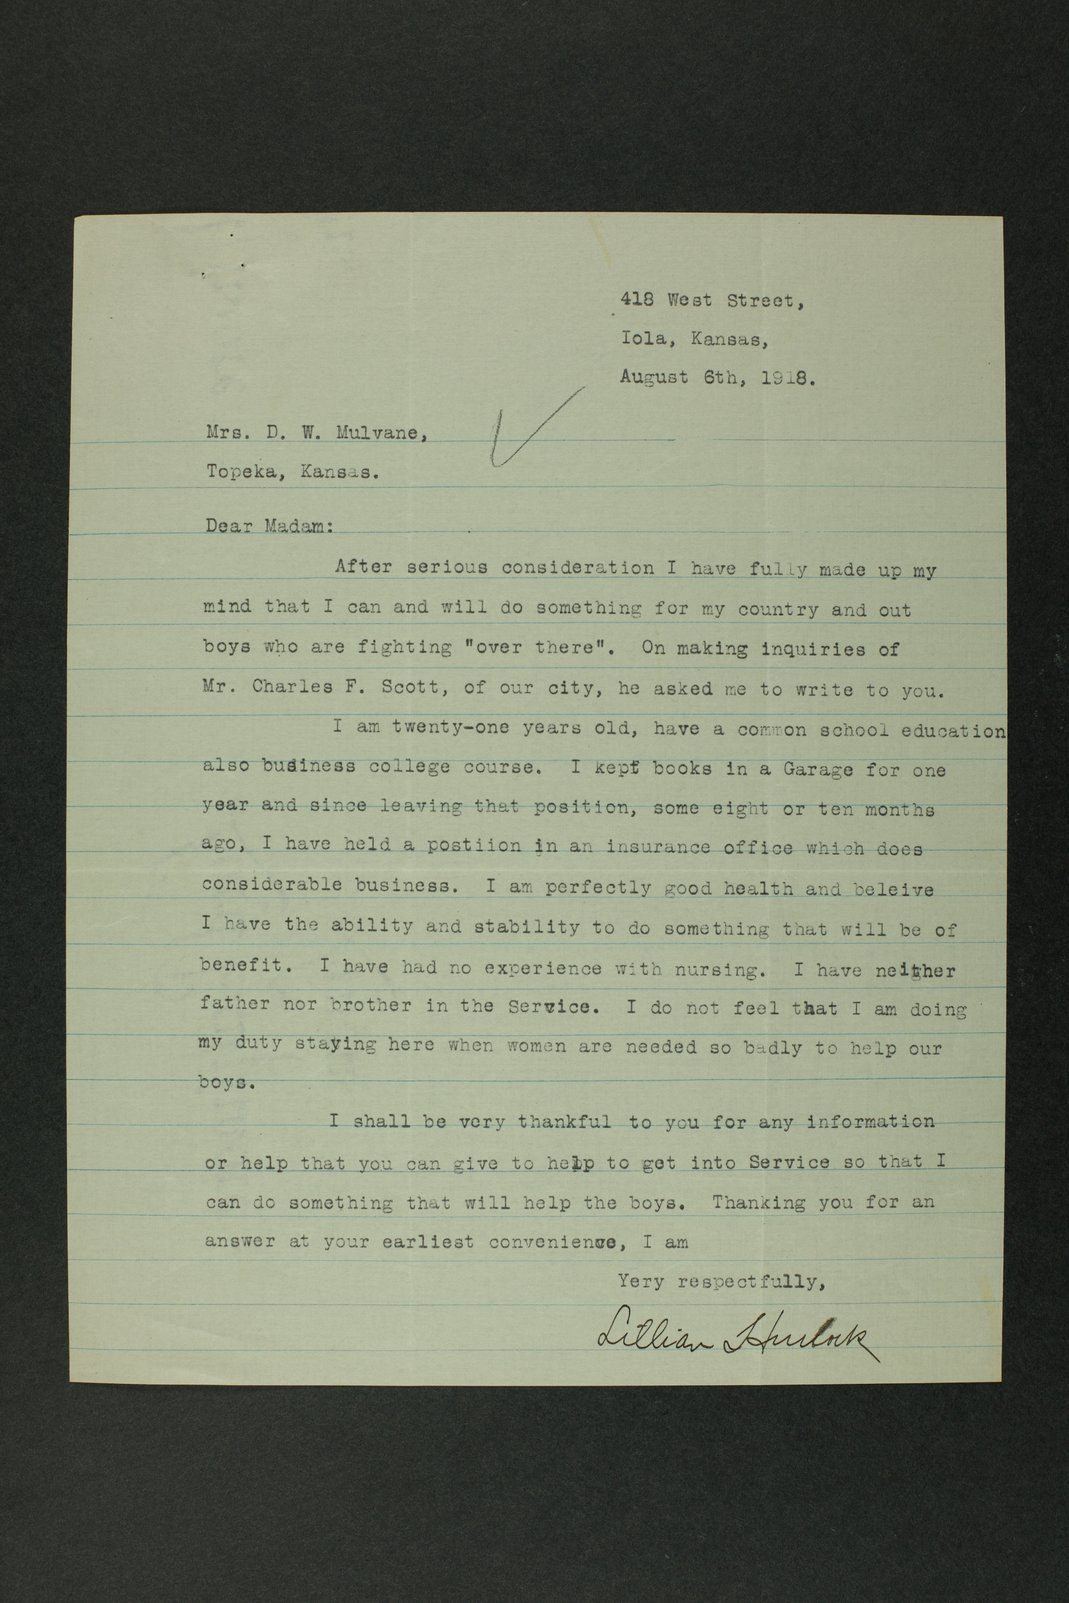 Council of National Defense Woman's Committee correspondence - 8